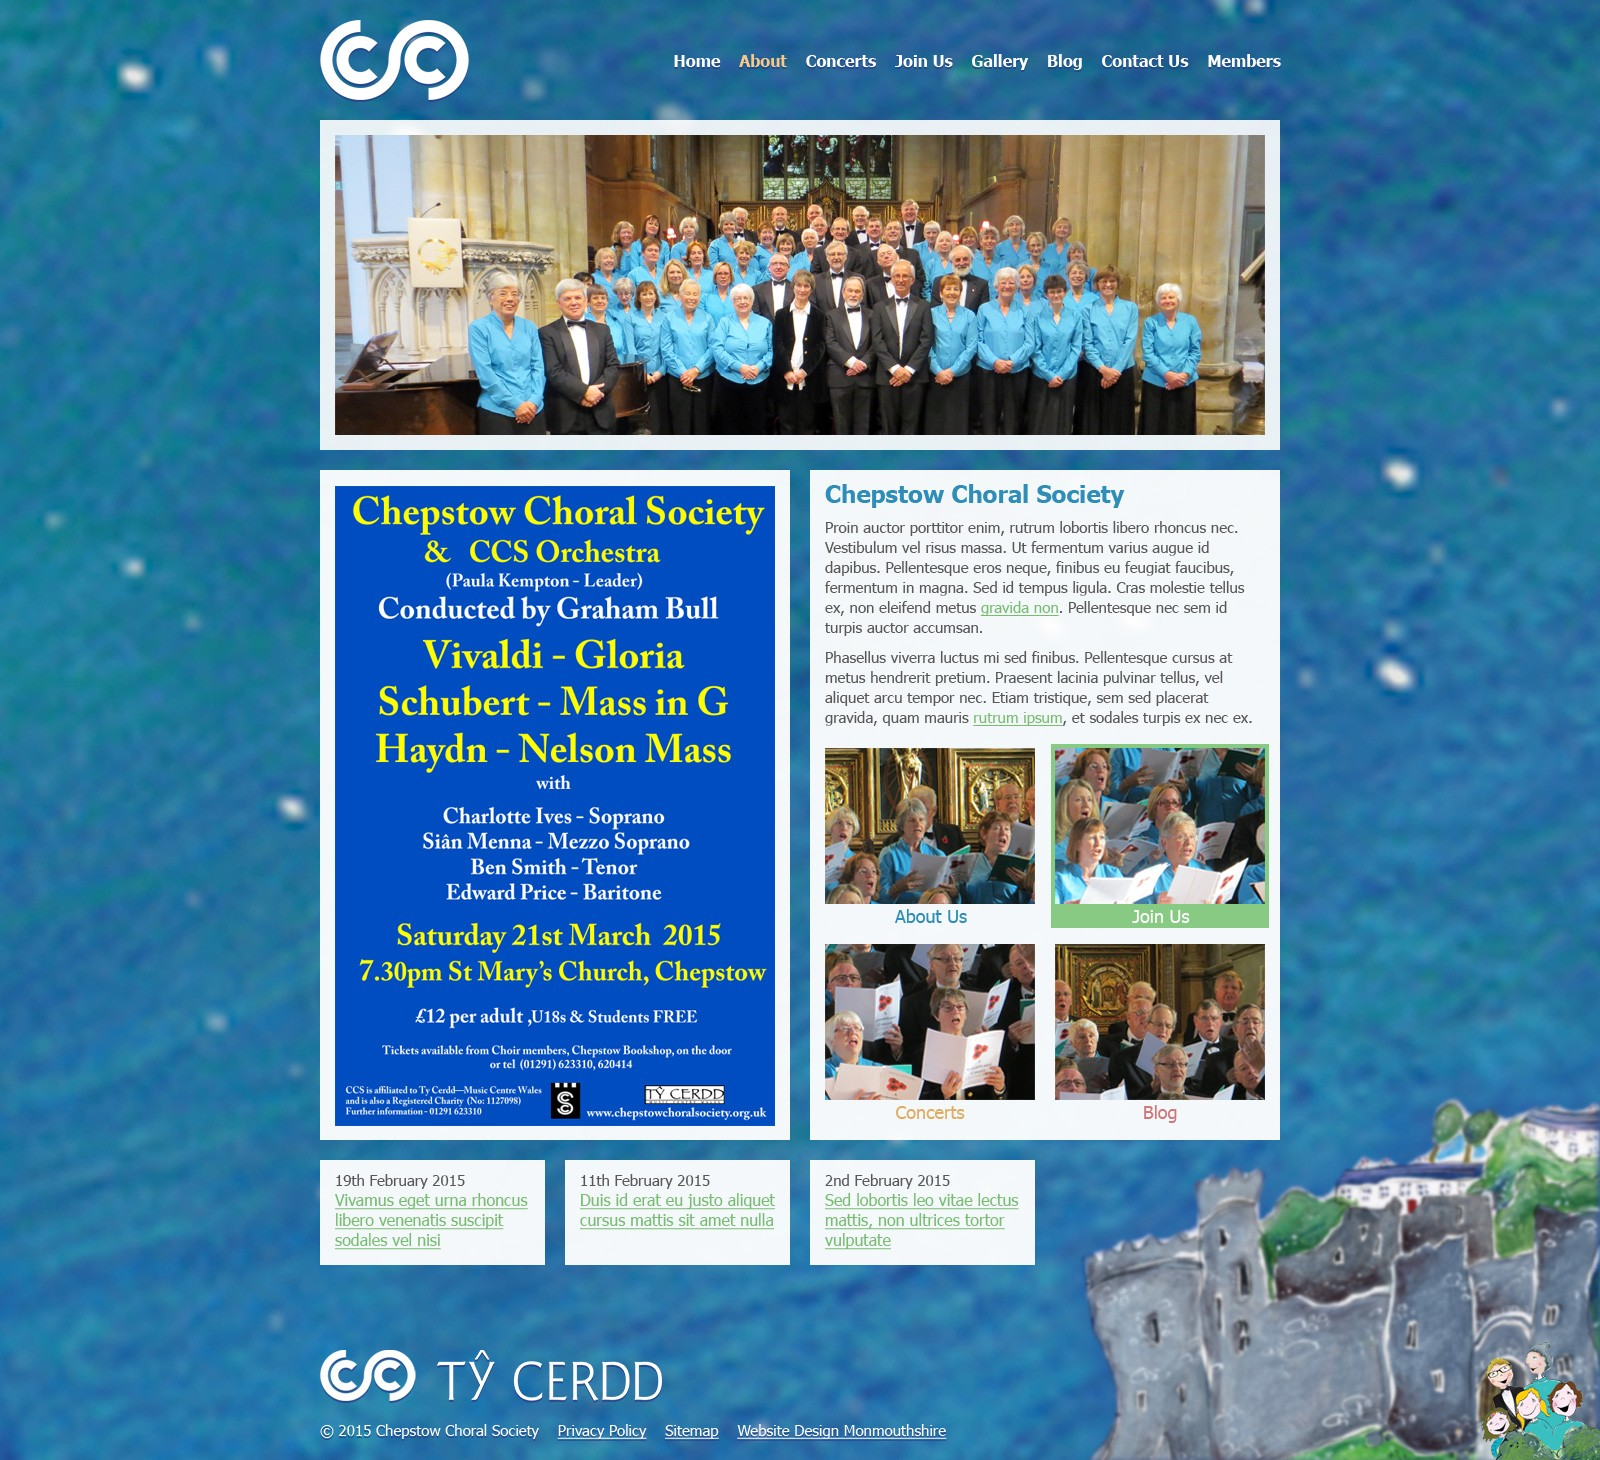 Chepstow Choral Society website screenshot